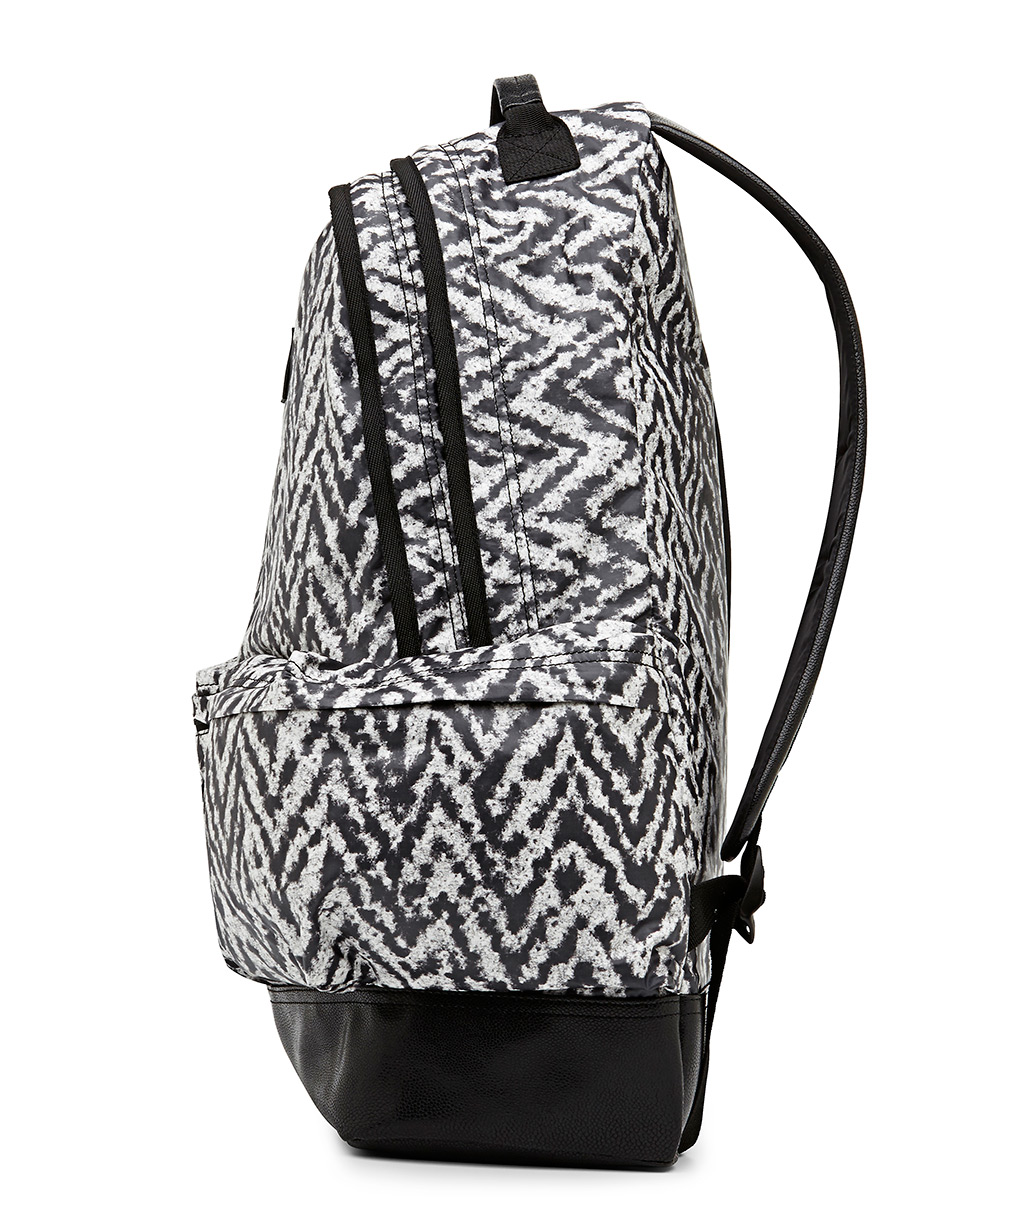 Sneakerboy® KRISVANASSCHE Fall Winter 2014 Backpack 2